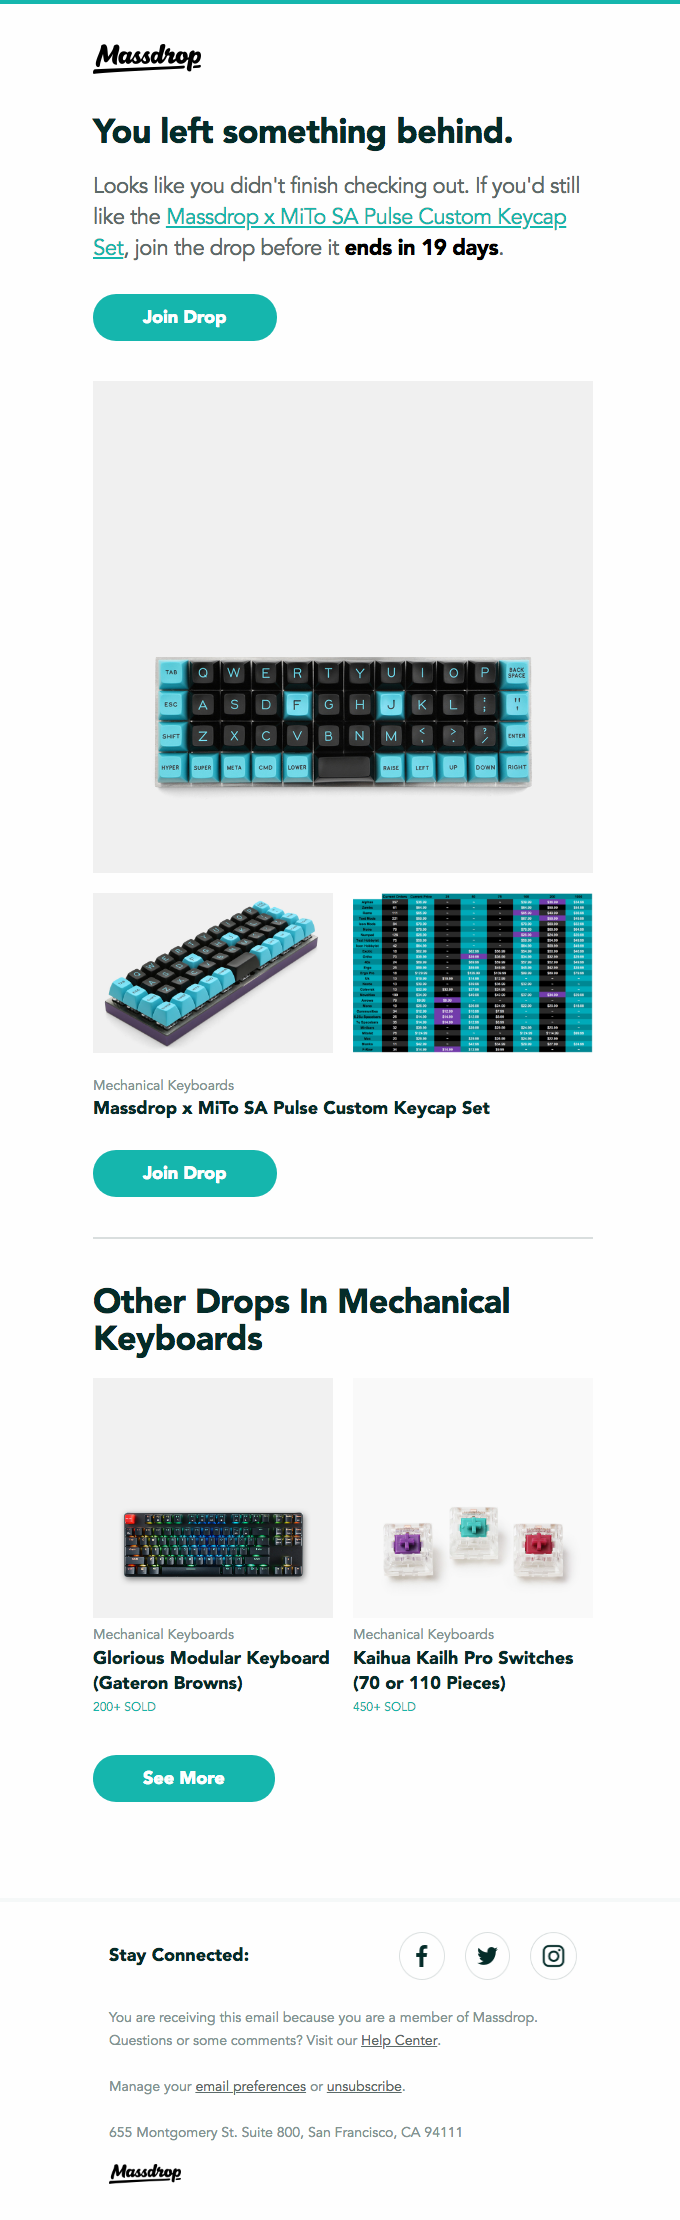 Smiles Davis, still interested in the Massdrop x MiTo SA Pulse Custom Keycap Set?